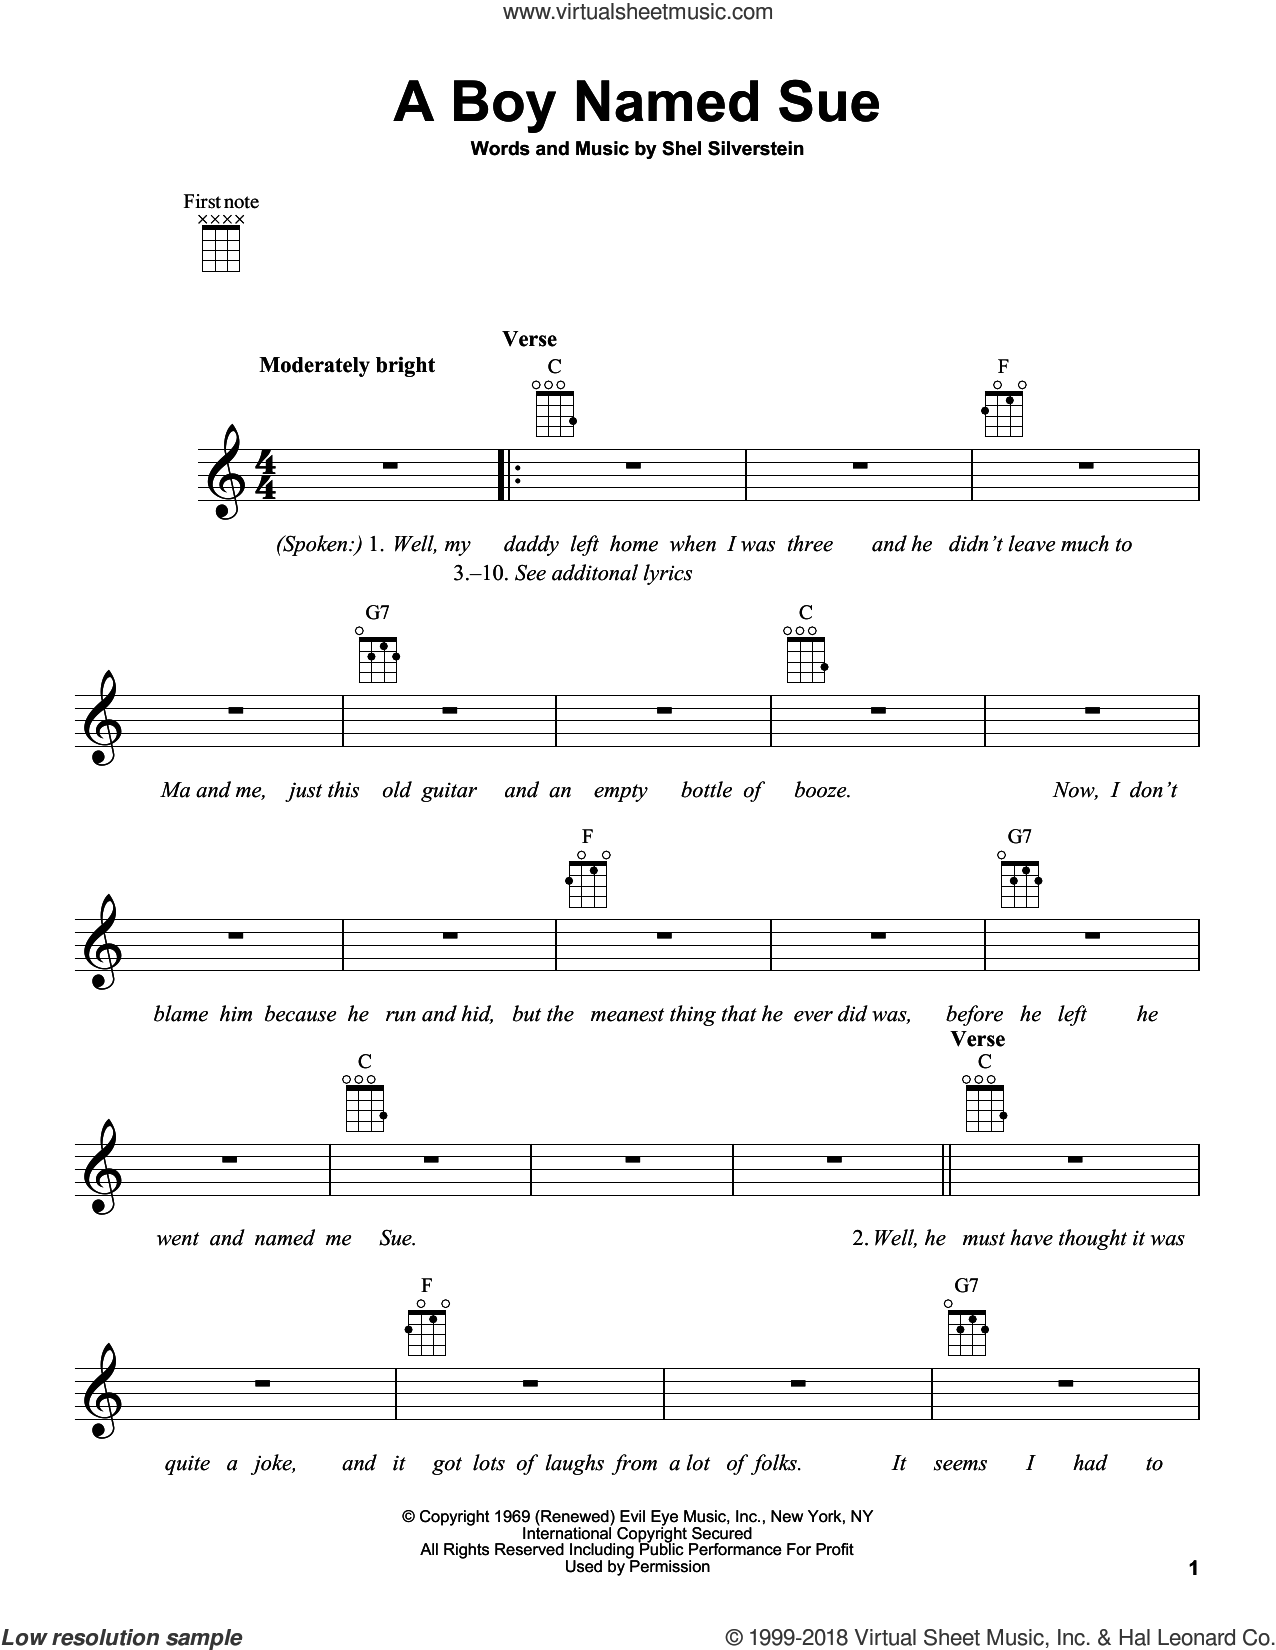 A Boy Named Sue sheet music for ukulele by Johnny Cash and Shel Silverstein, intermediate skill level